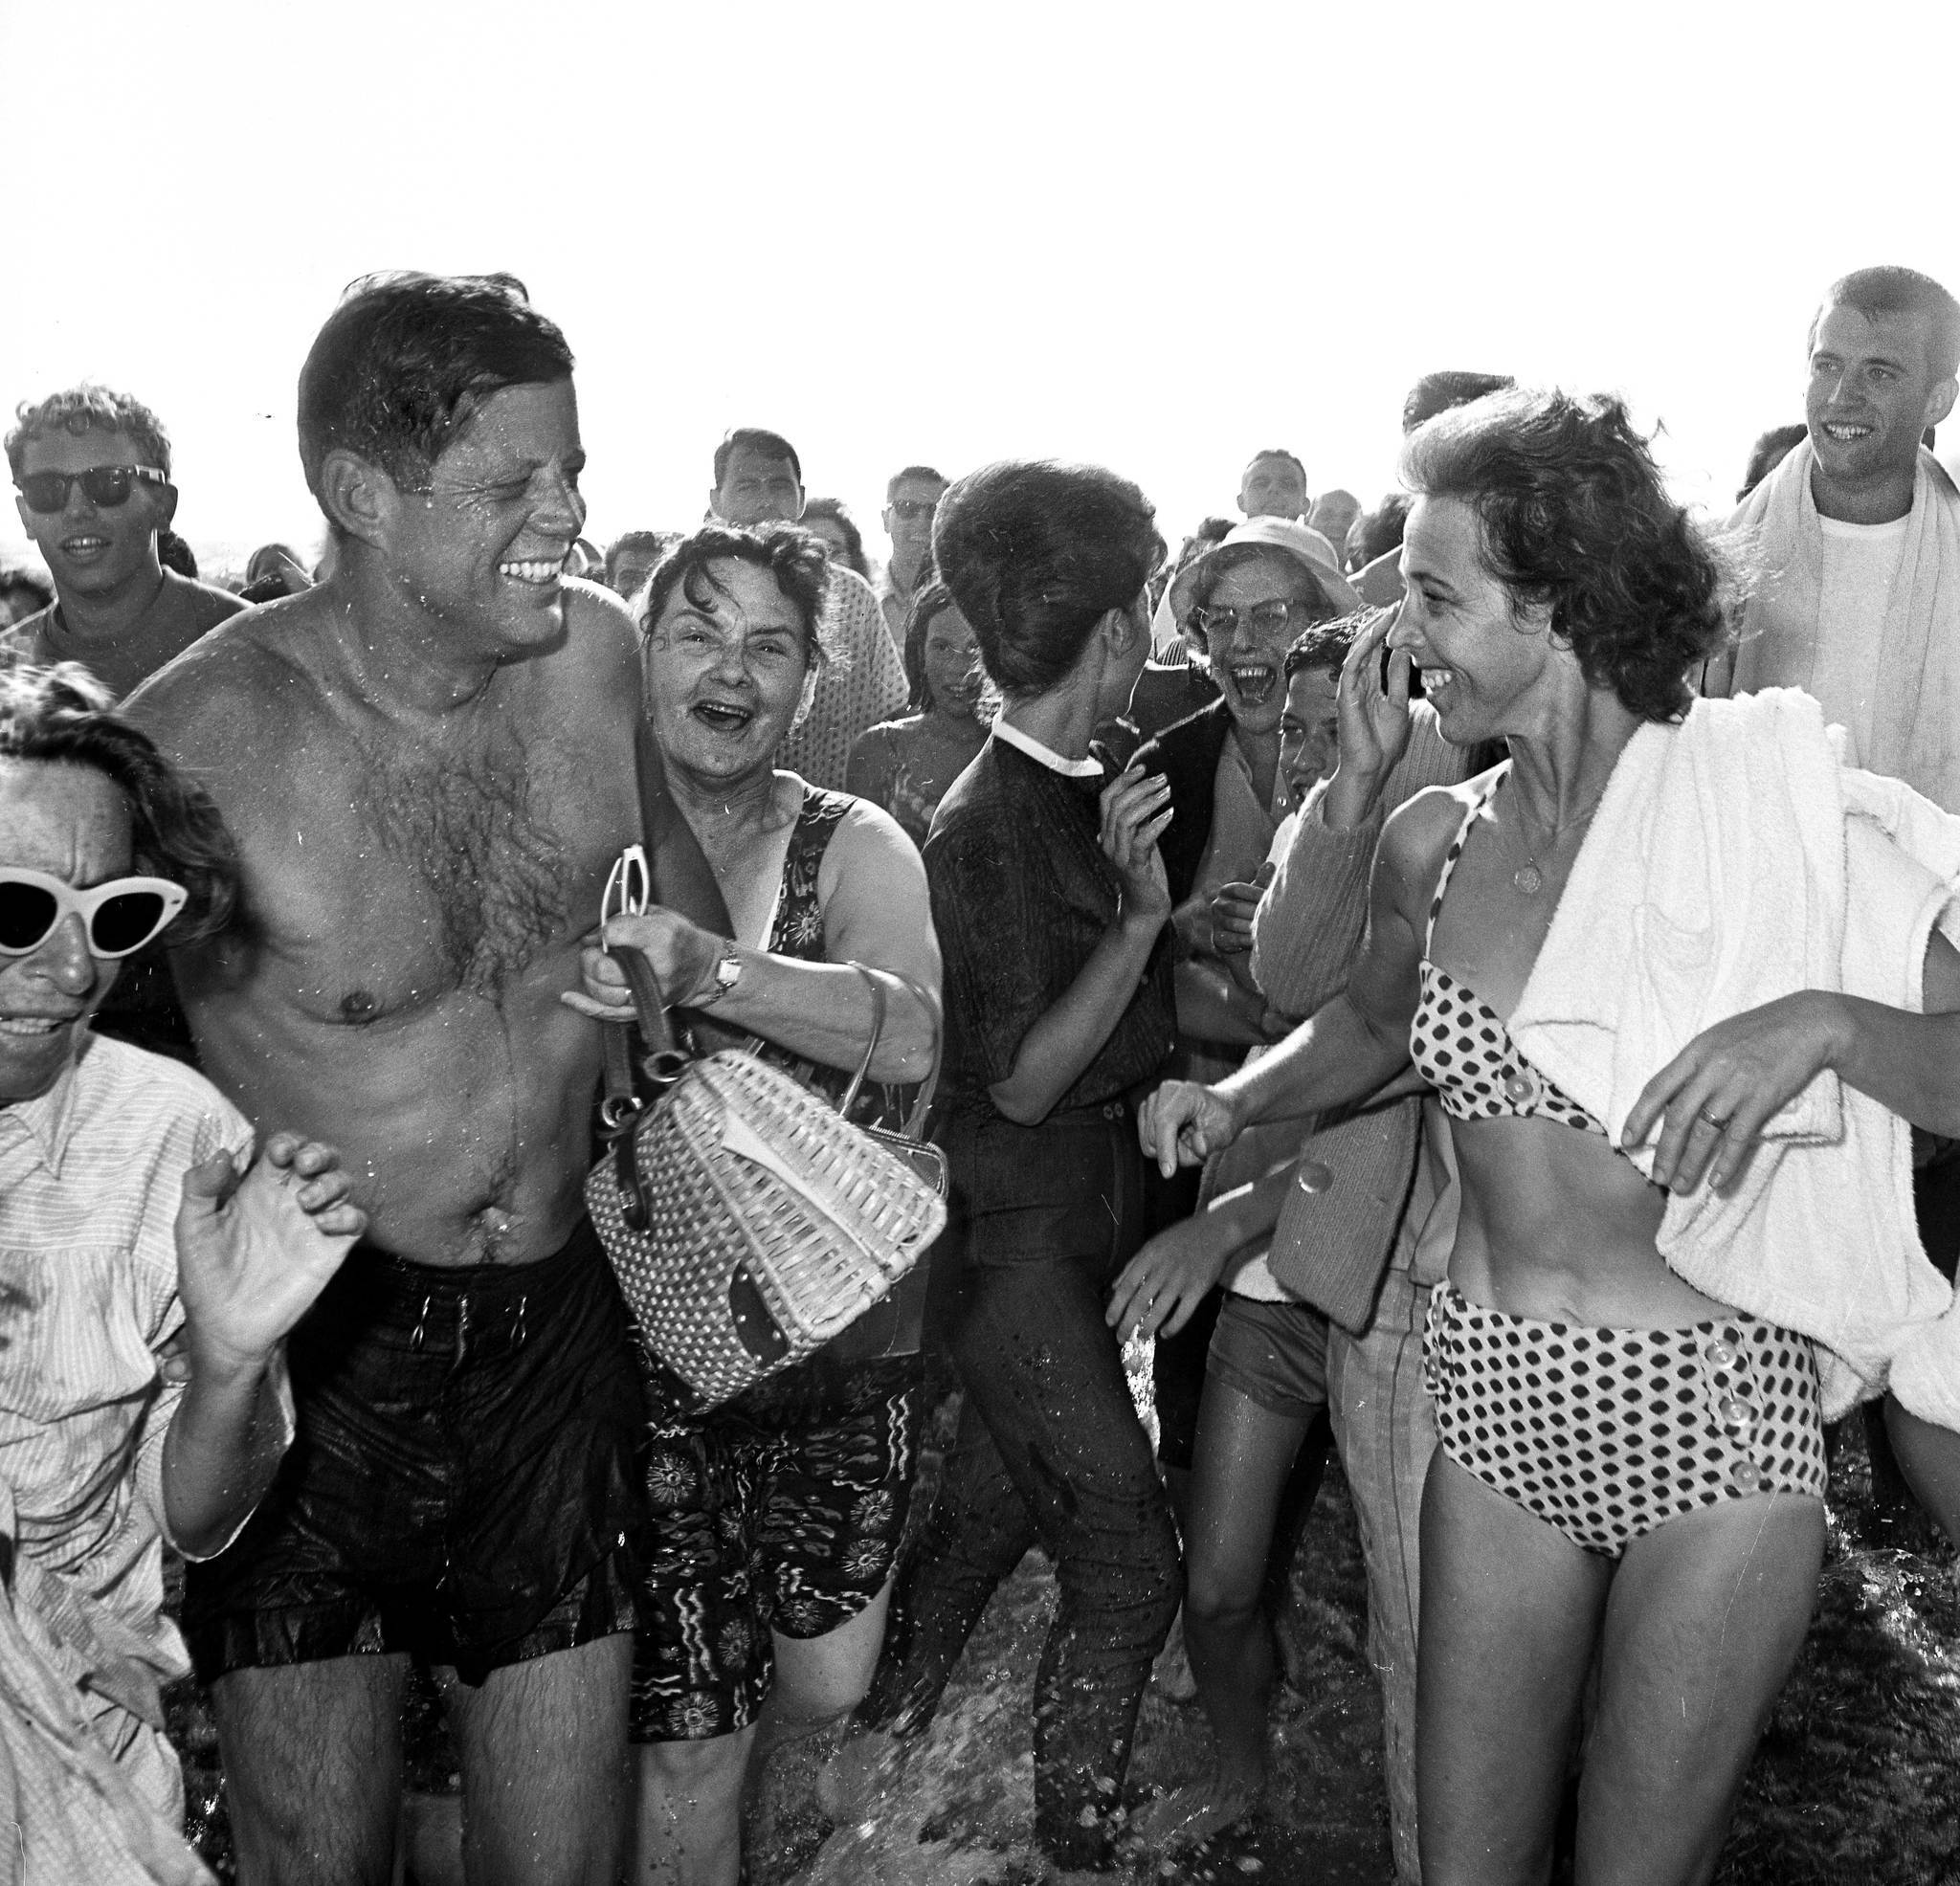 To cap off a 33-hour visit to Los Angeles in 1962, President Kennedy takes an impromptu dip at the beach in Santa Monica as throngs of admirers try to get close.